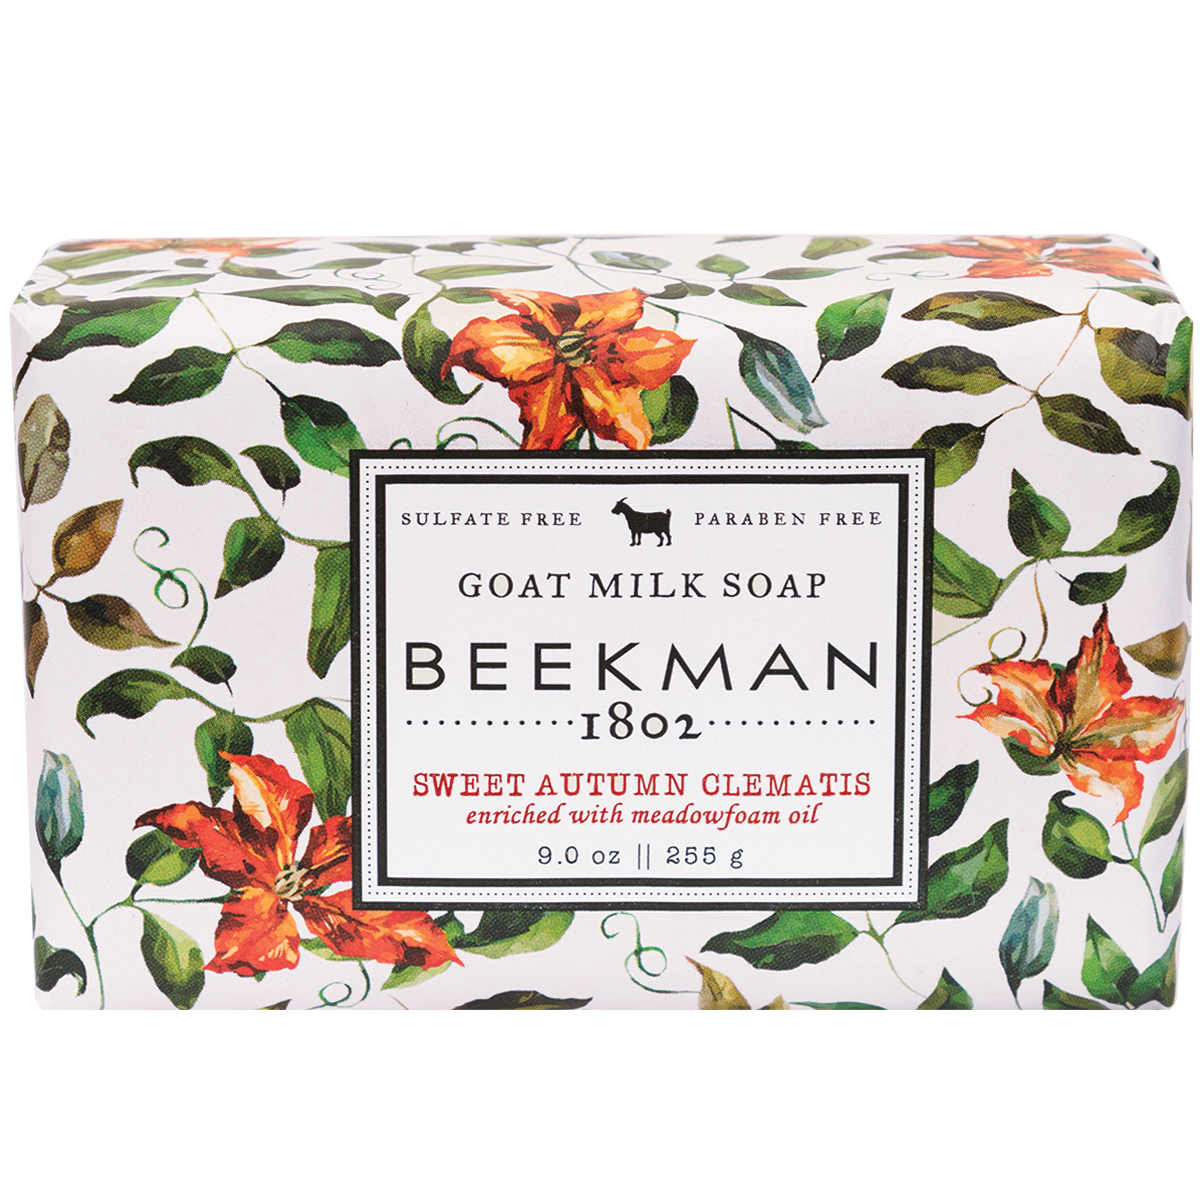 Sweet Autumn Clematis Goat Milk Bar Soap 9 oz